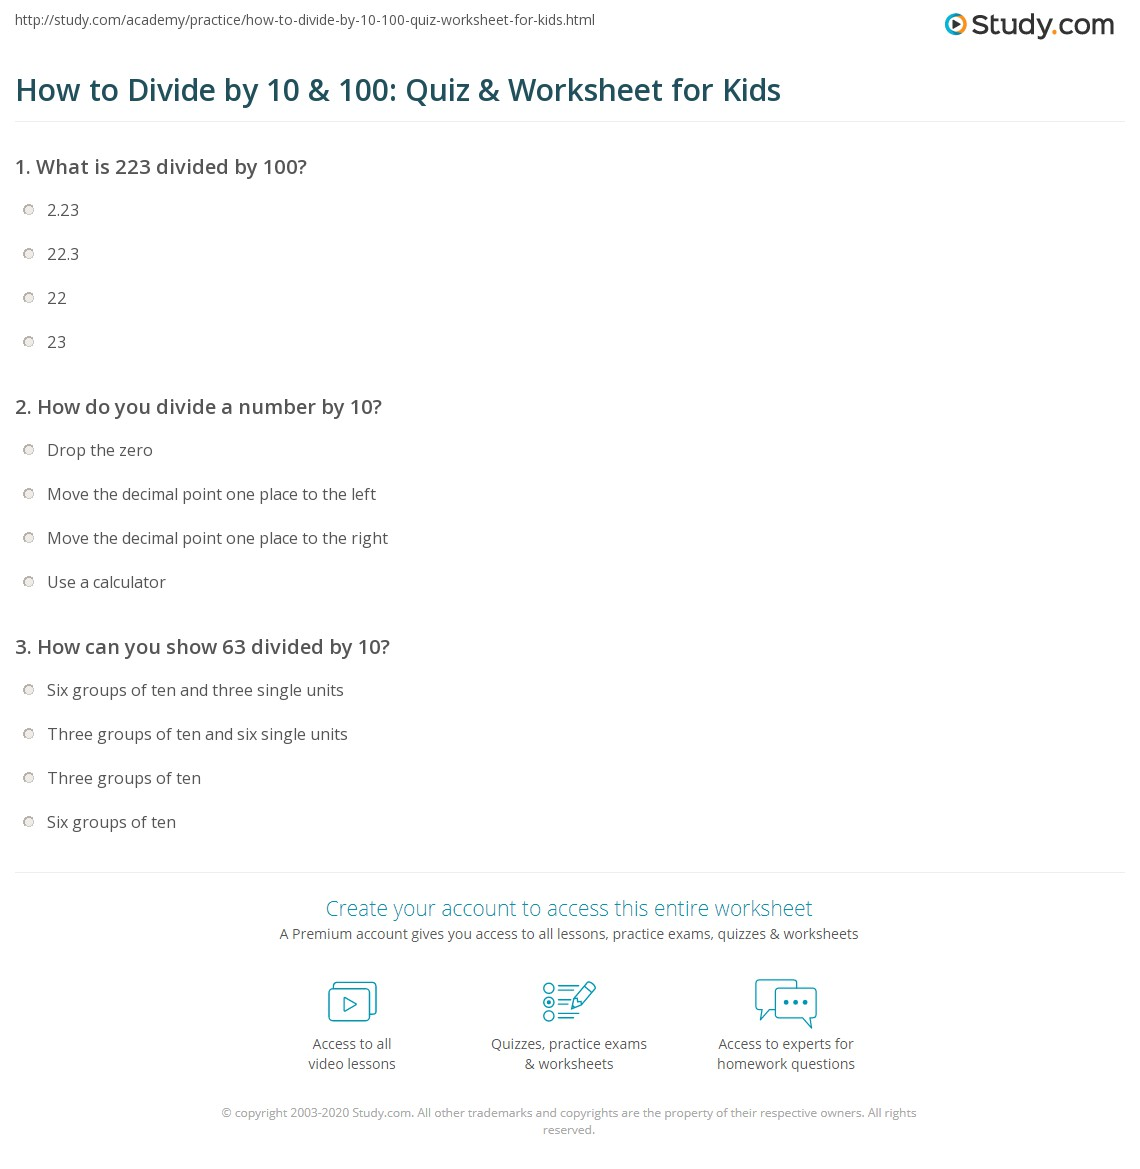 How to Divide by 10 & 100: Quiz & Worksheet for Kids | Study.com